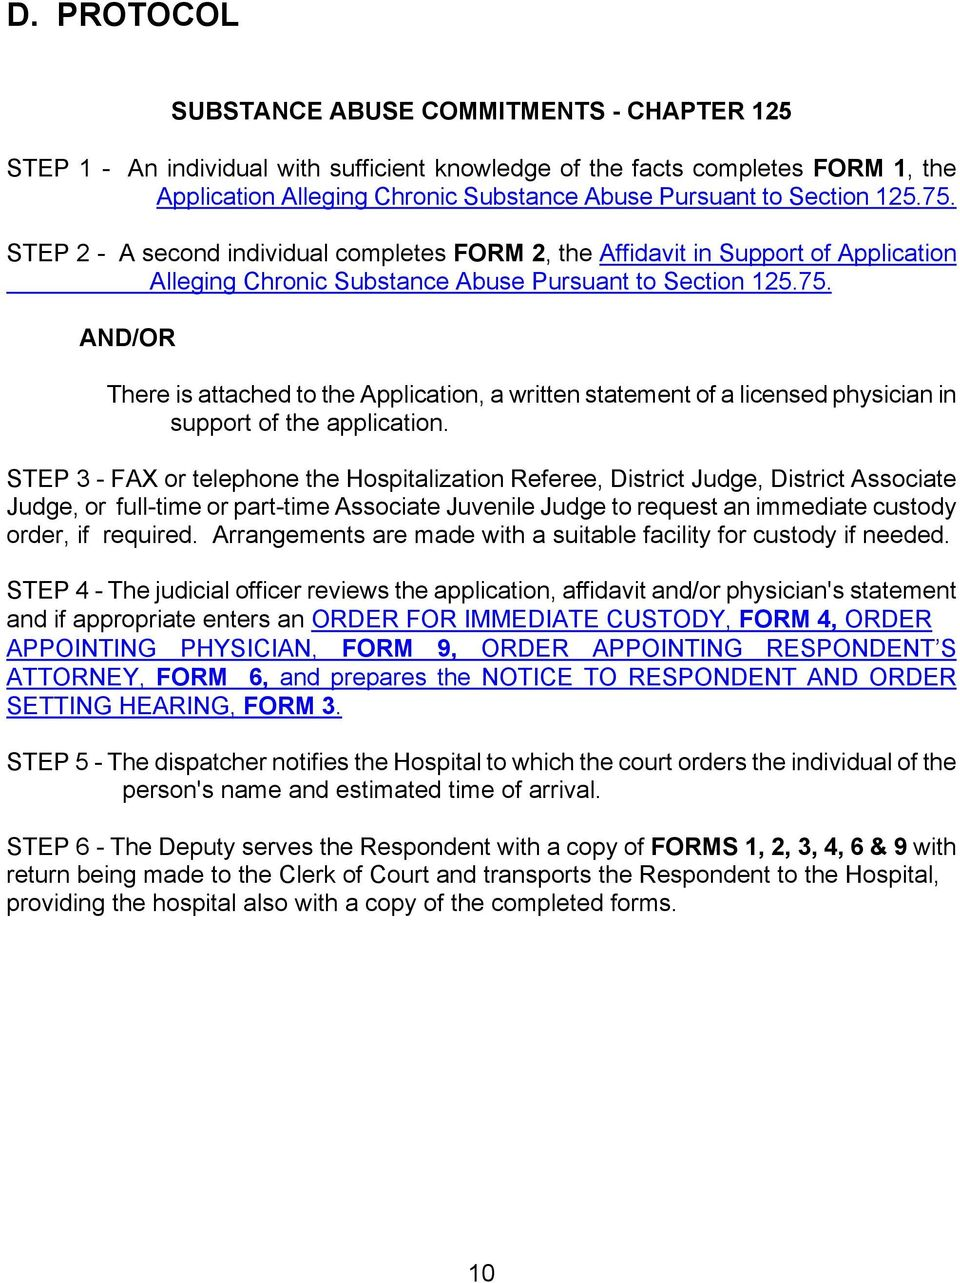 STEP 3 - FAX or telephone the Hospitalization Referee, District Judge, District Associate Judge, or full-time or part-time Associate Juvenile Judge to request an immediate custody order, if required.